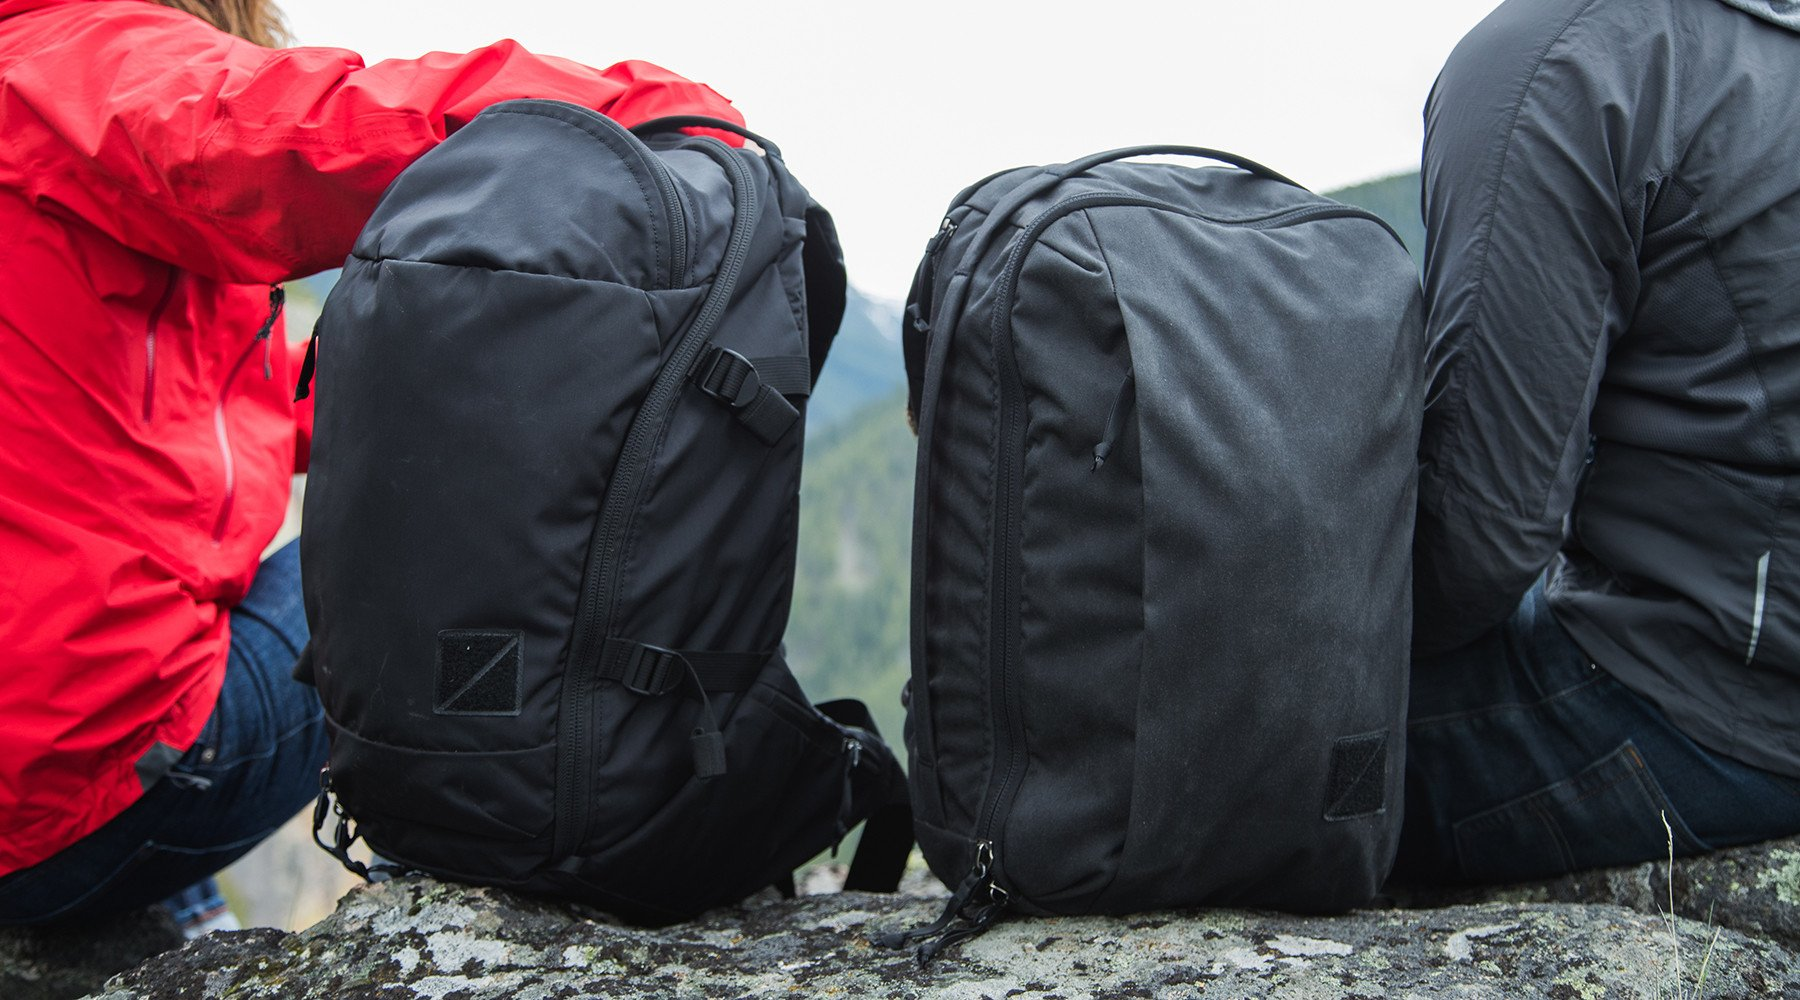 evergoods crossover backpack